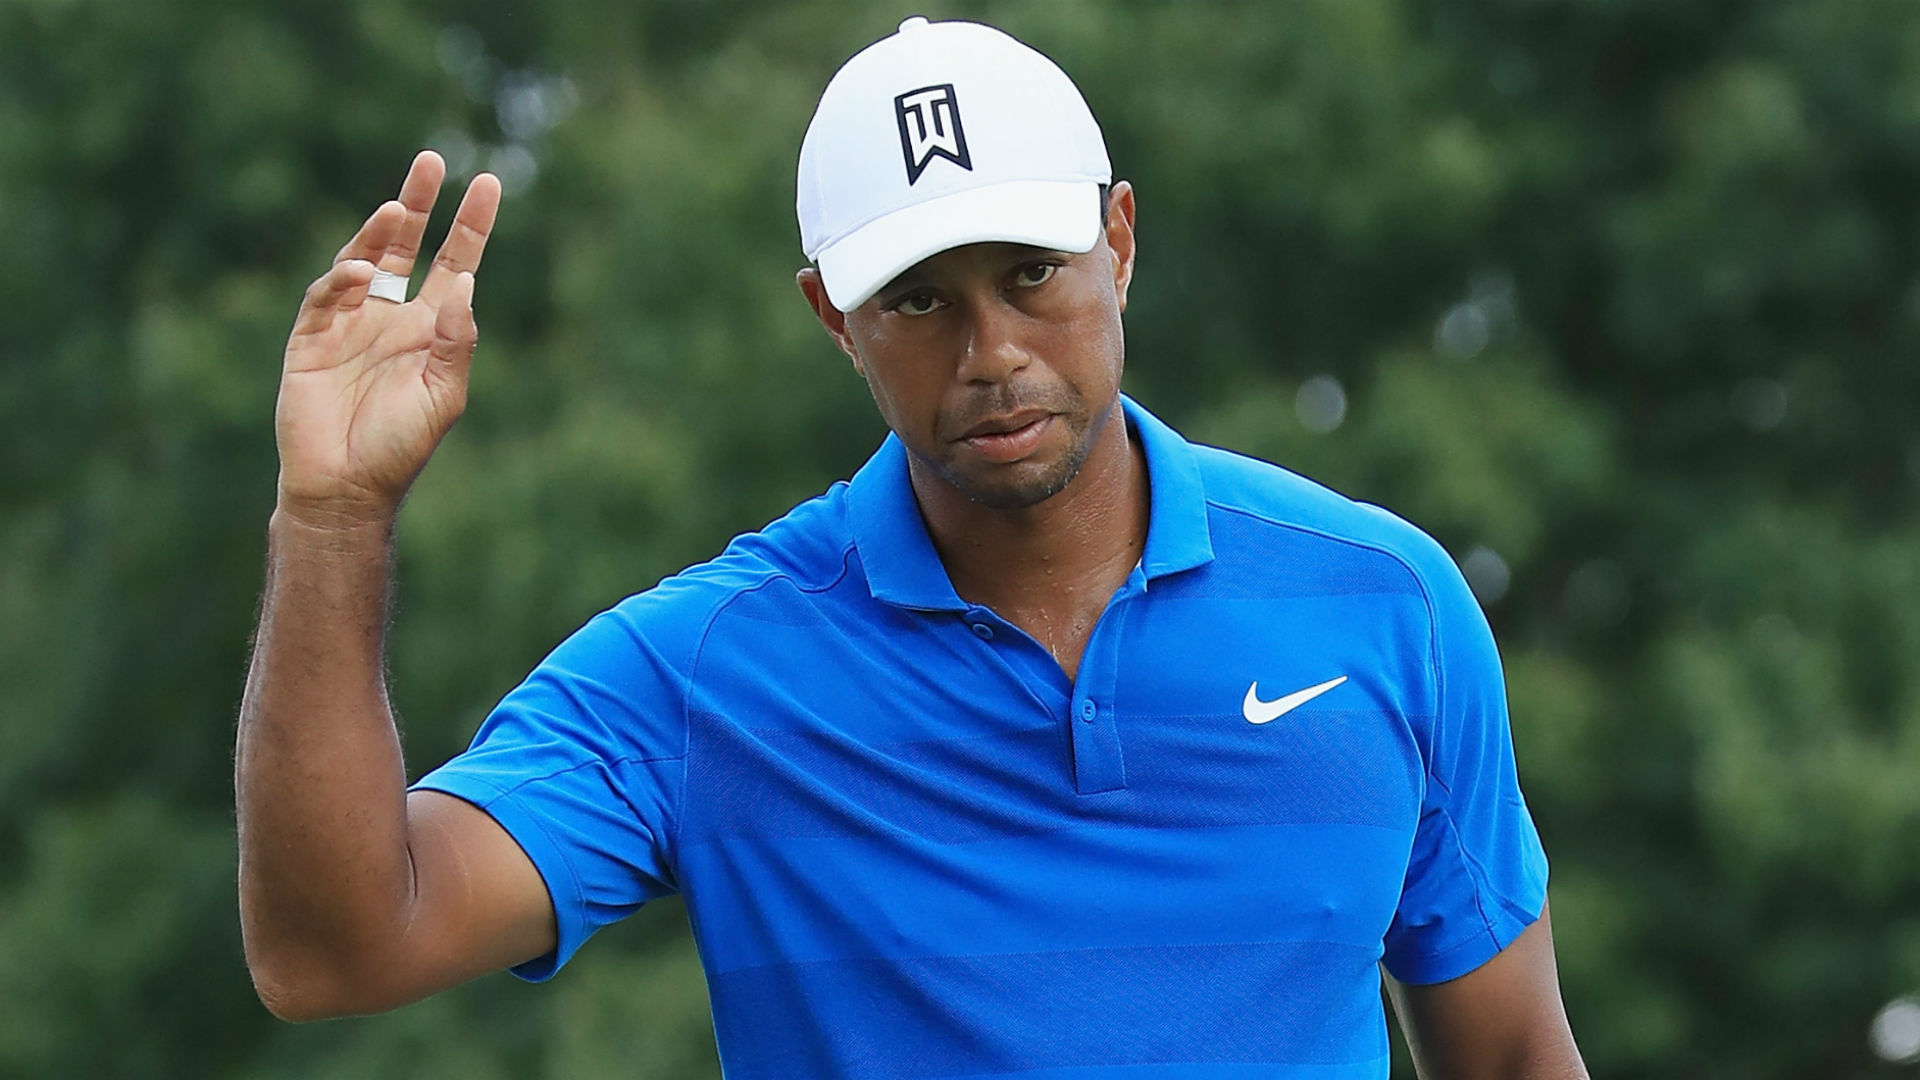 Tiger Woods can win the 2018 FedExCup title. Here's how